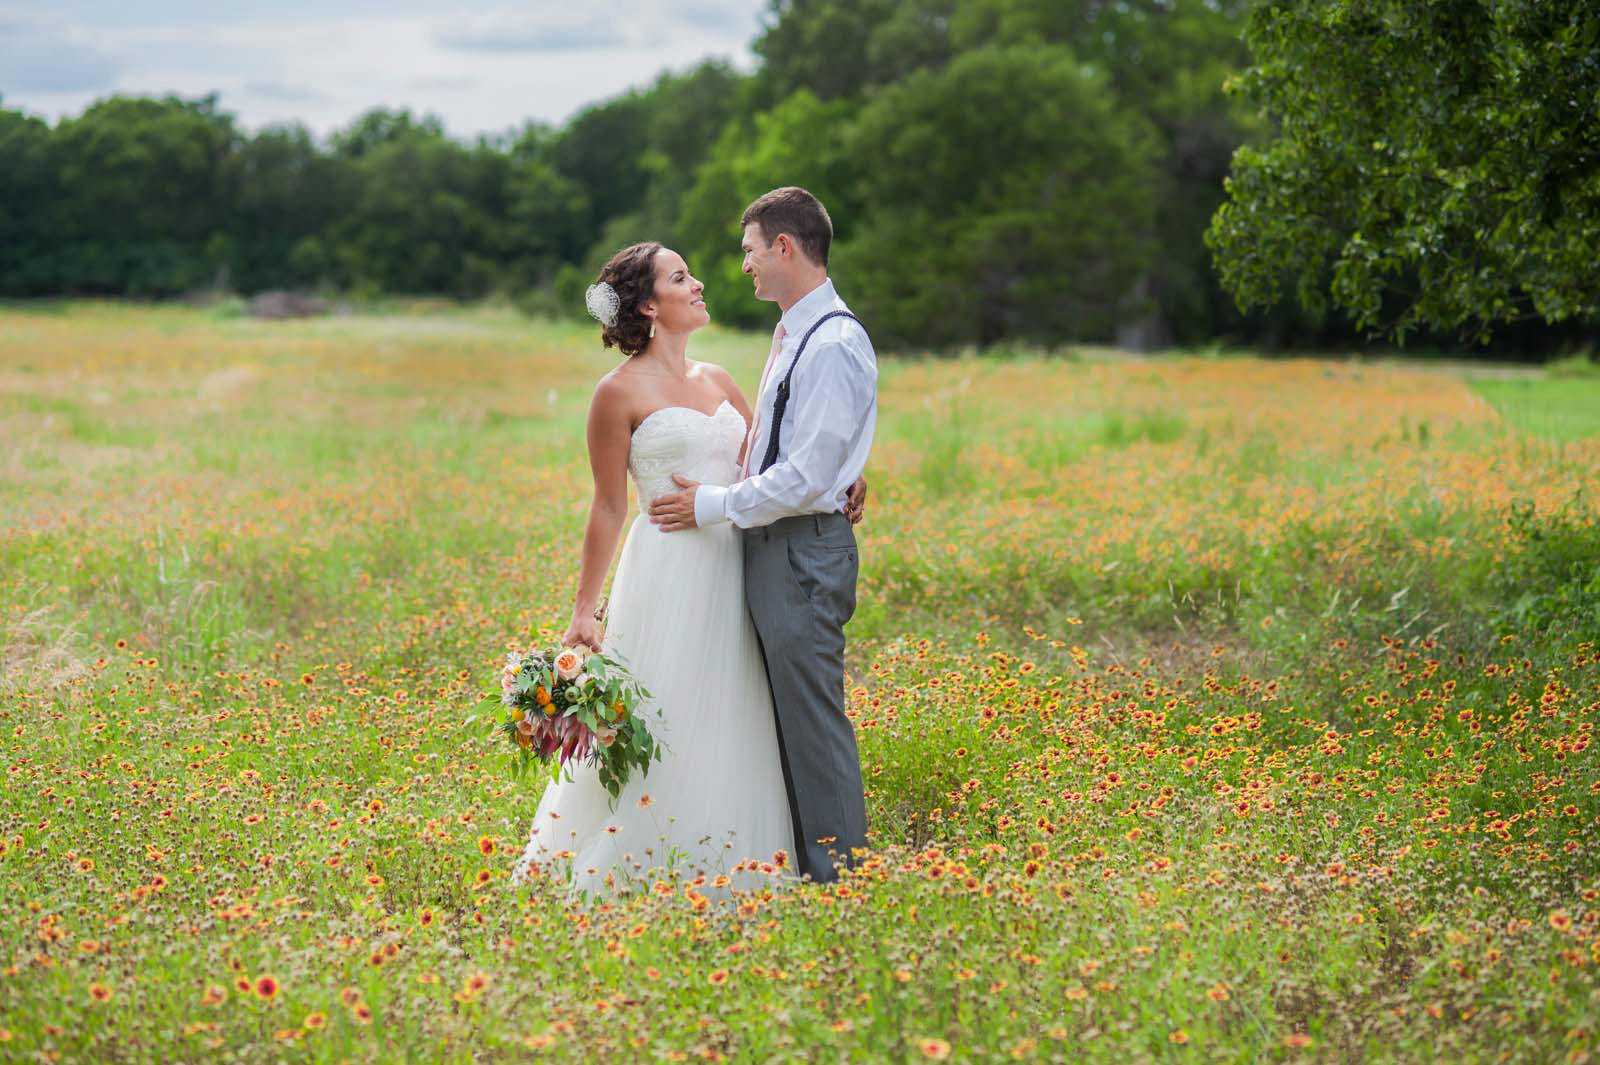 austin_wedding_photographer-19